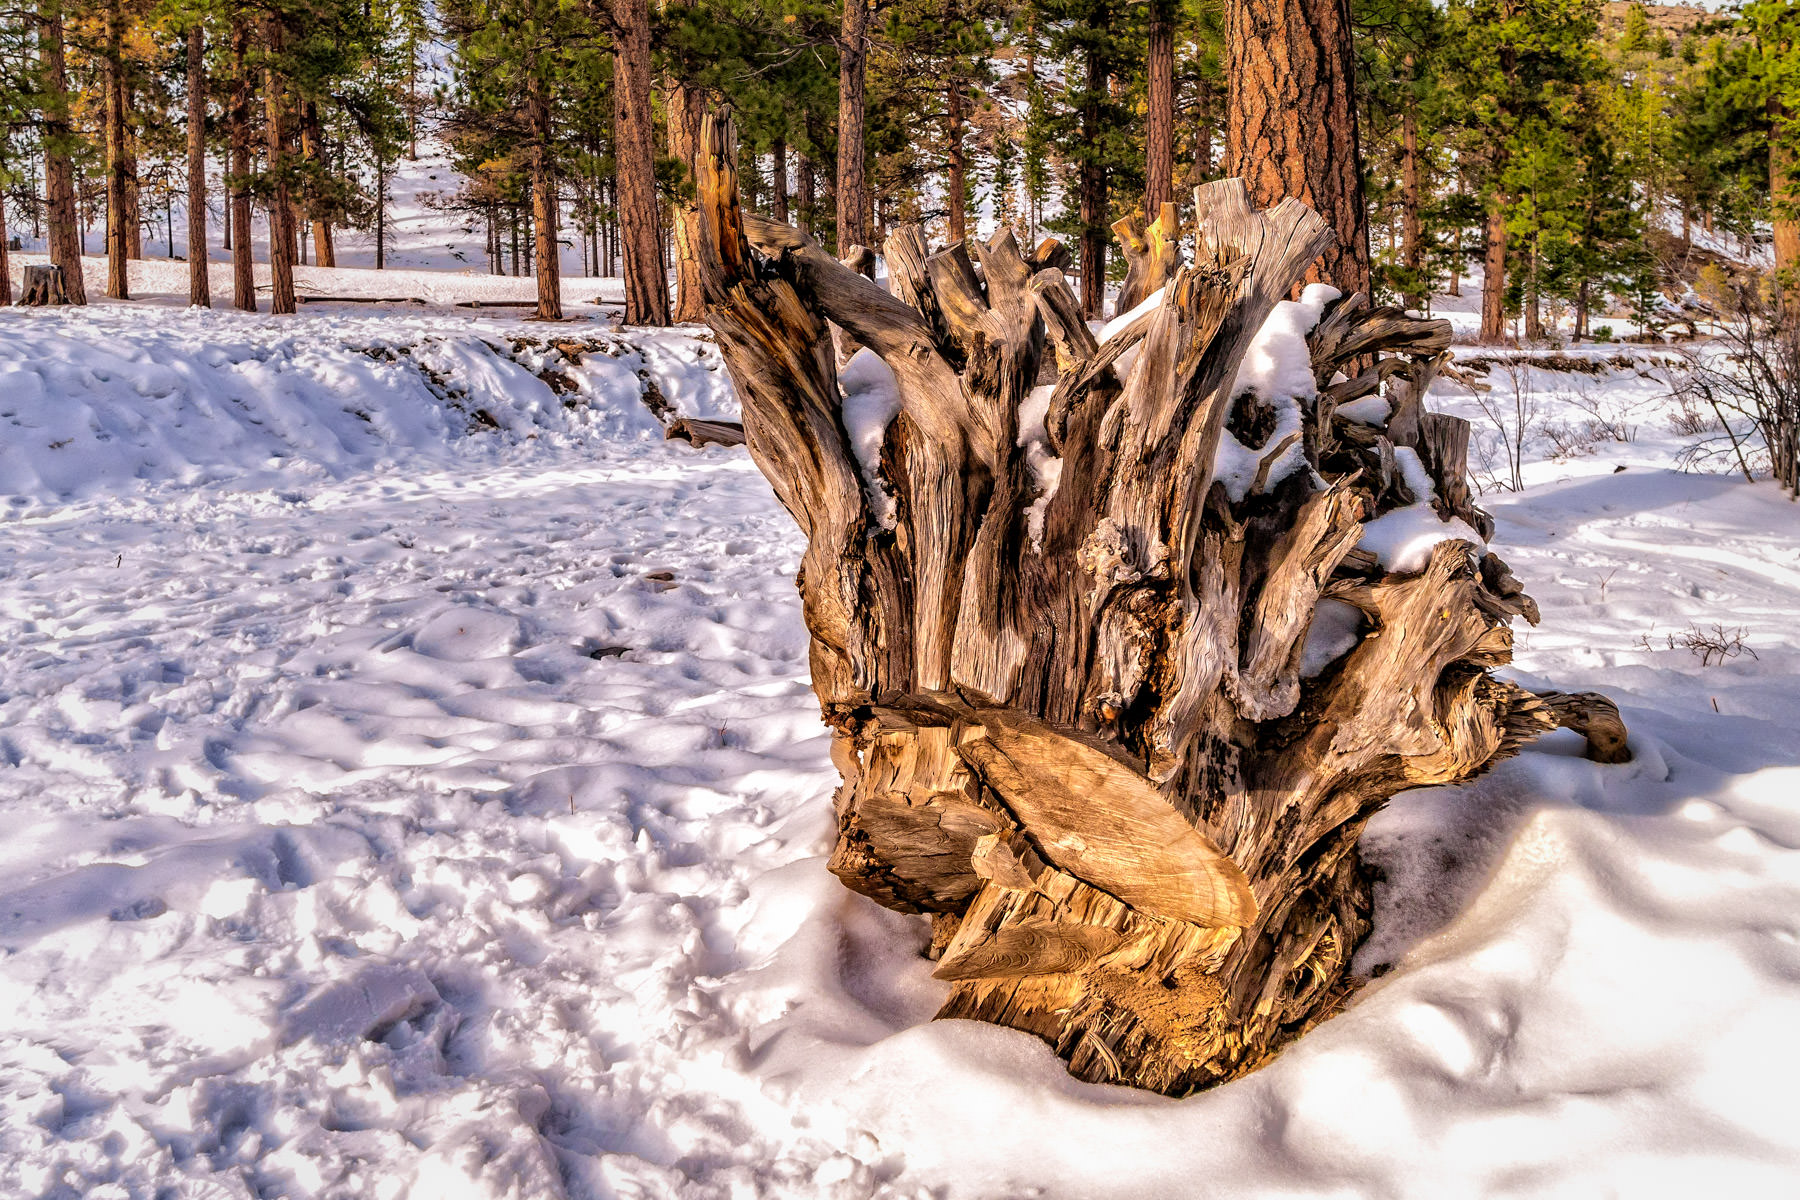 A tree stump lies in the snow of Nevada's Mount Charleston.